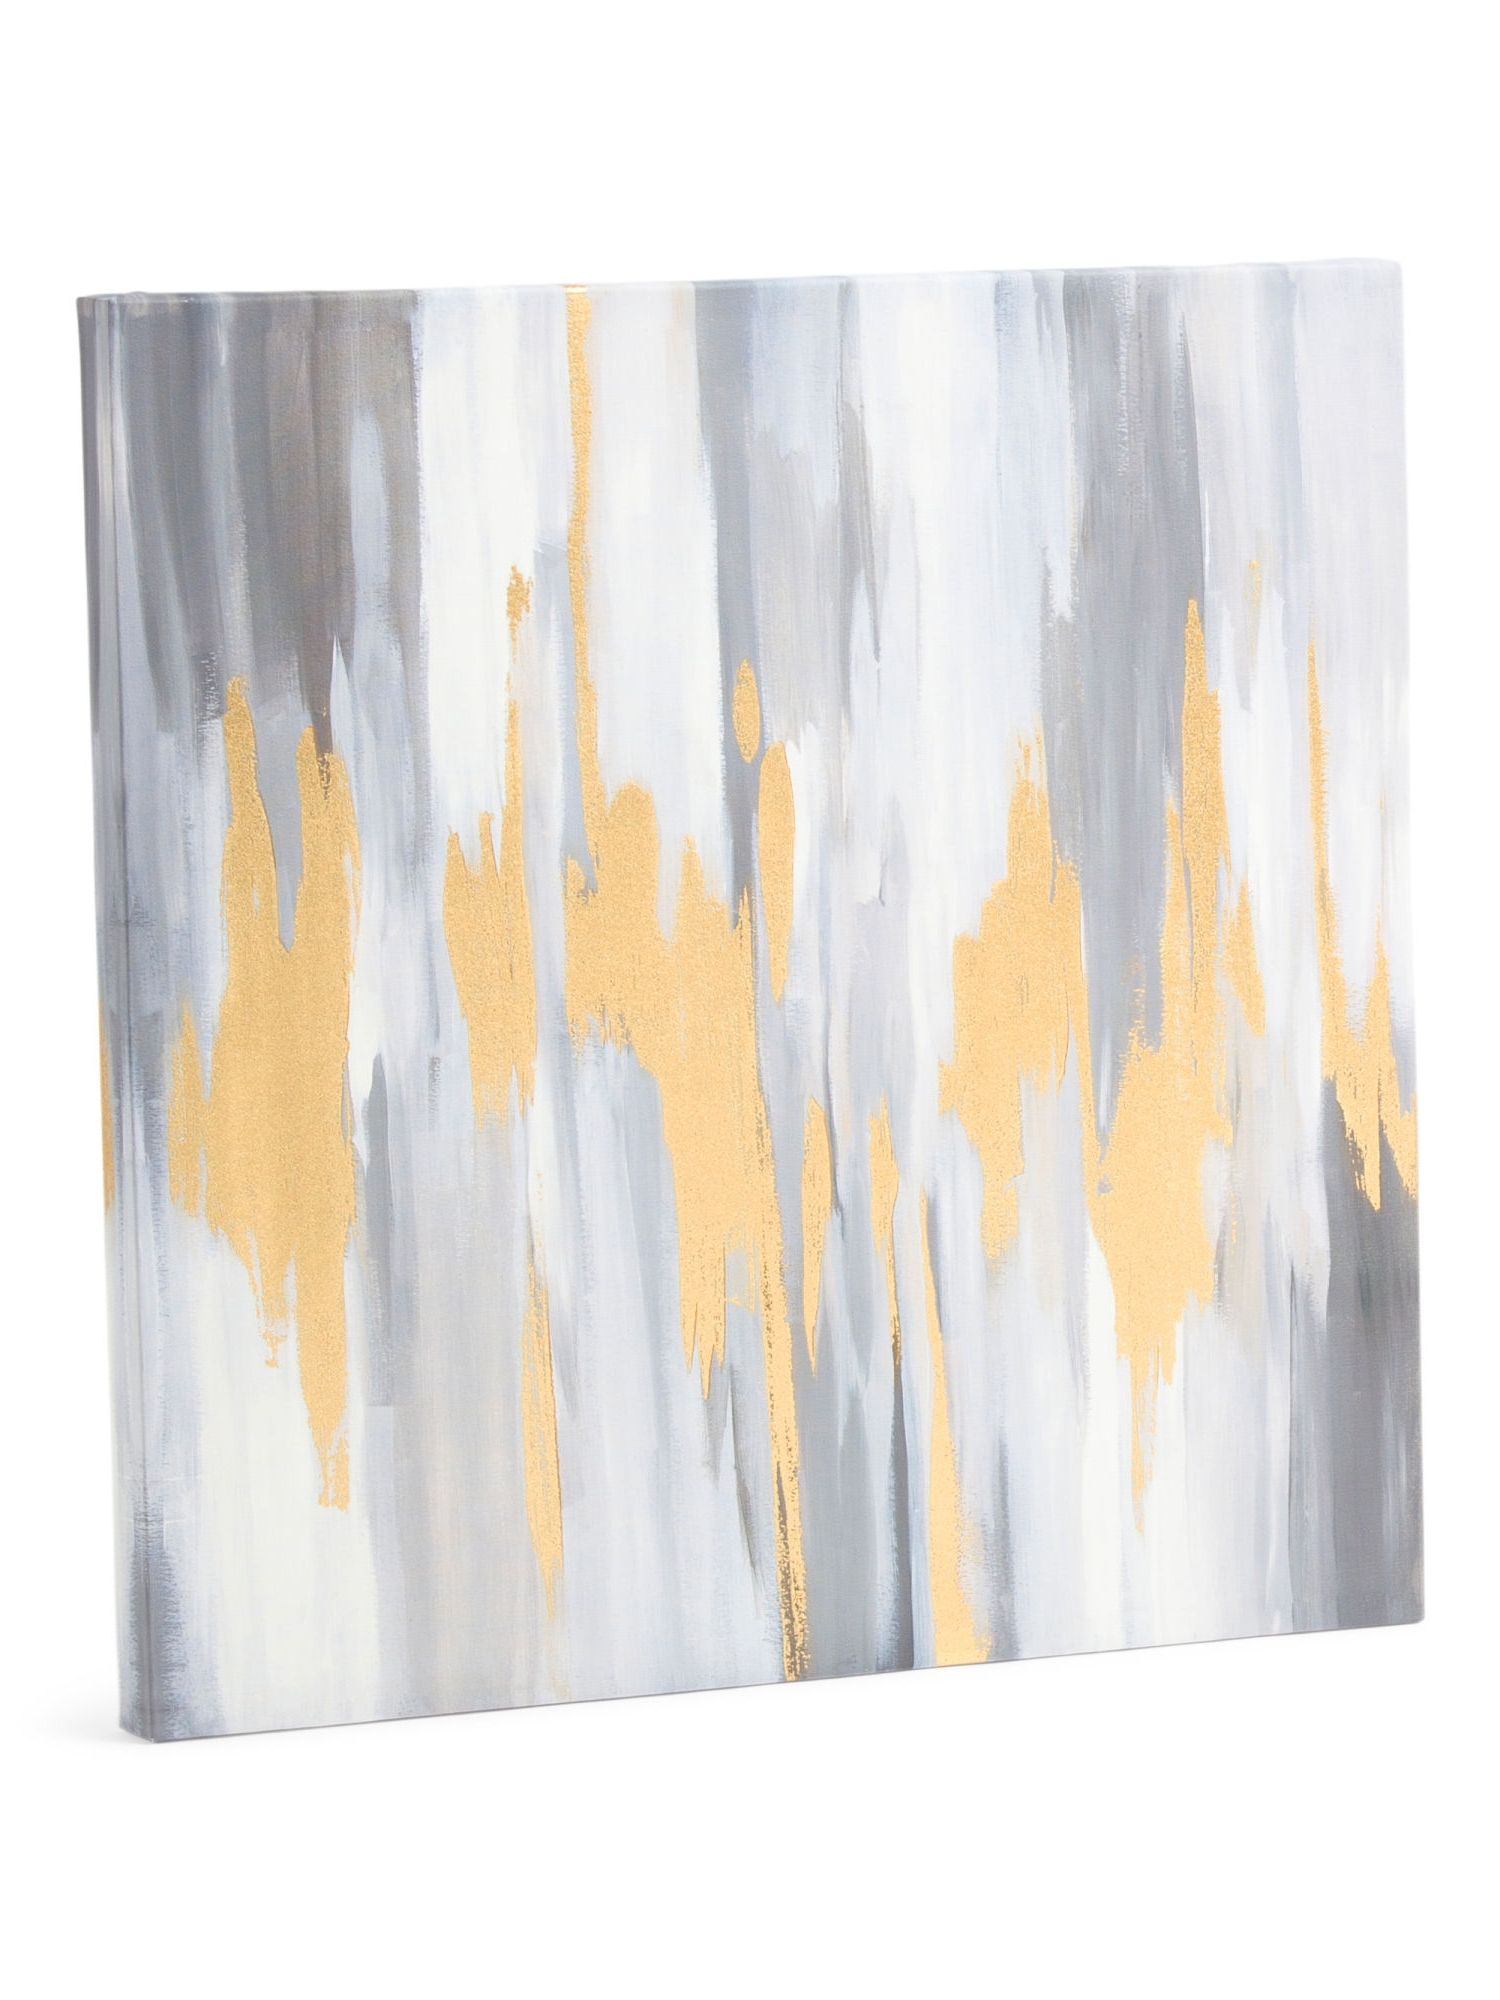 Tj Maxx Wall Art For Widely Used 24X24 Gray Abstract Wall Art With Gold Foil – Wall Decor – T.j (View 13 of 15)